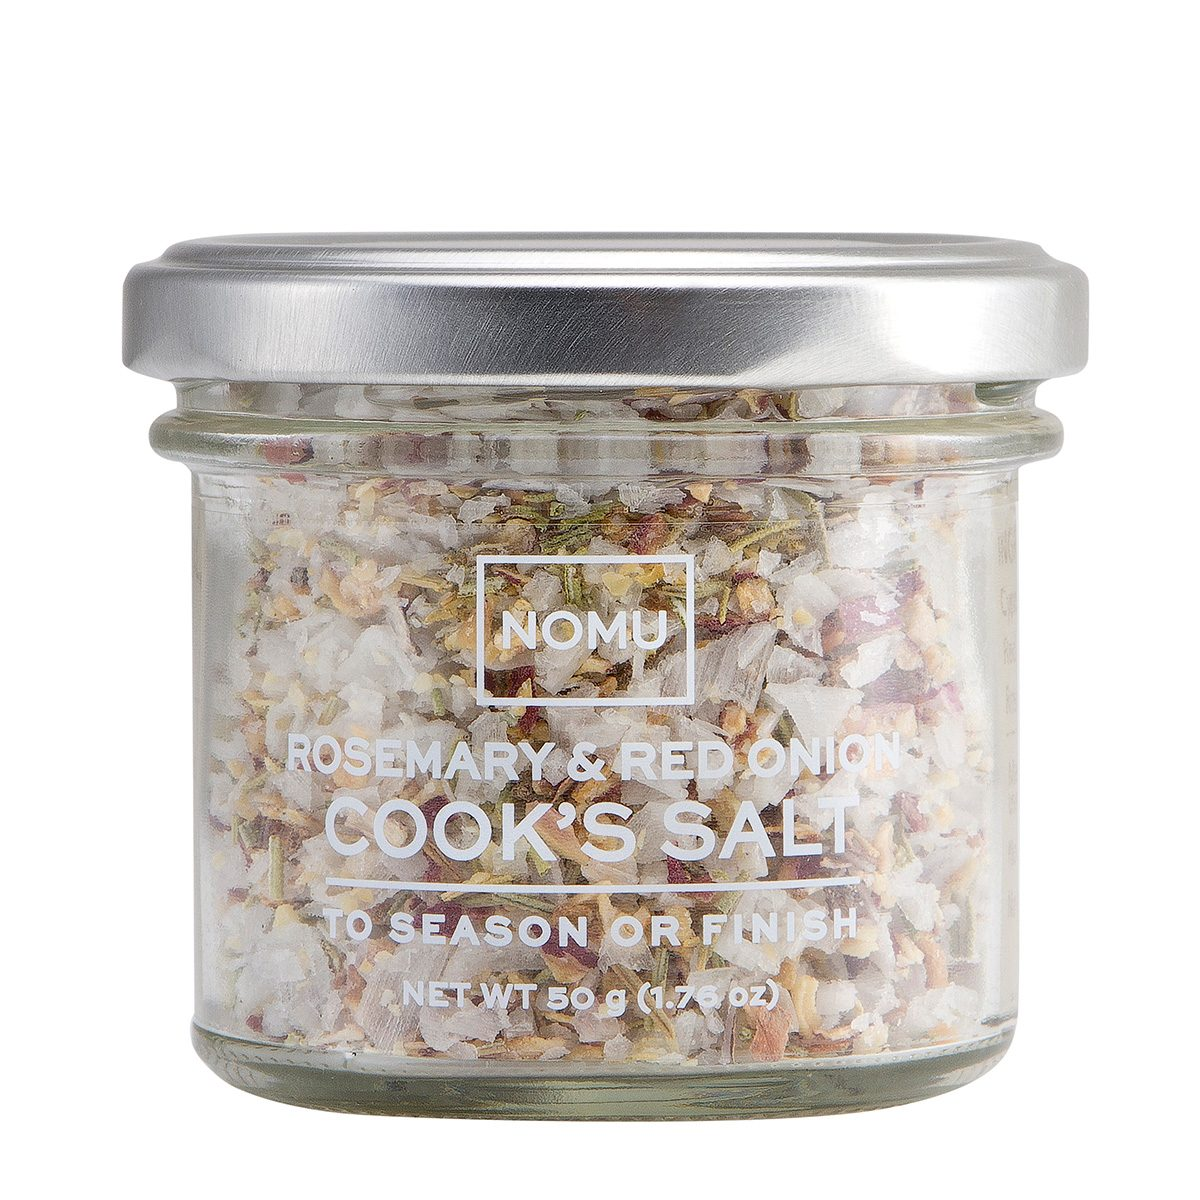 Rosemary-&-Red-Onion-Cook's-Salt1